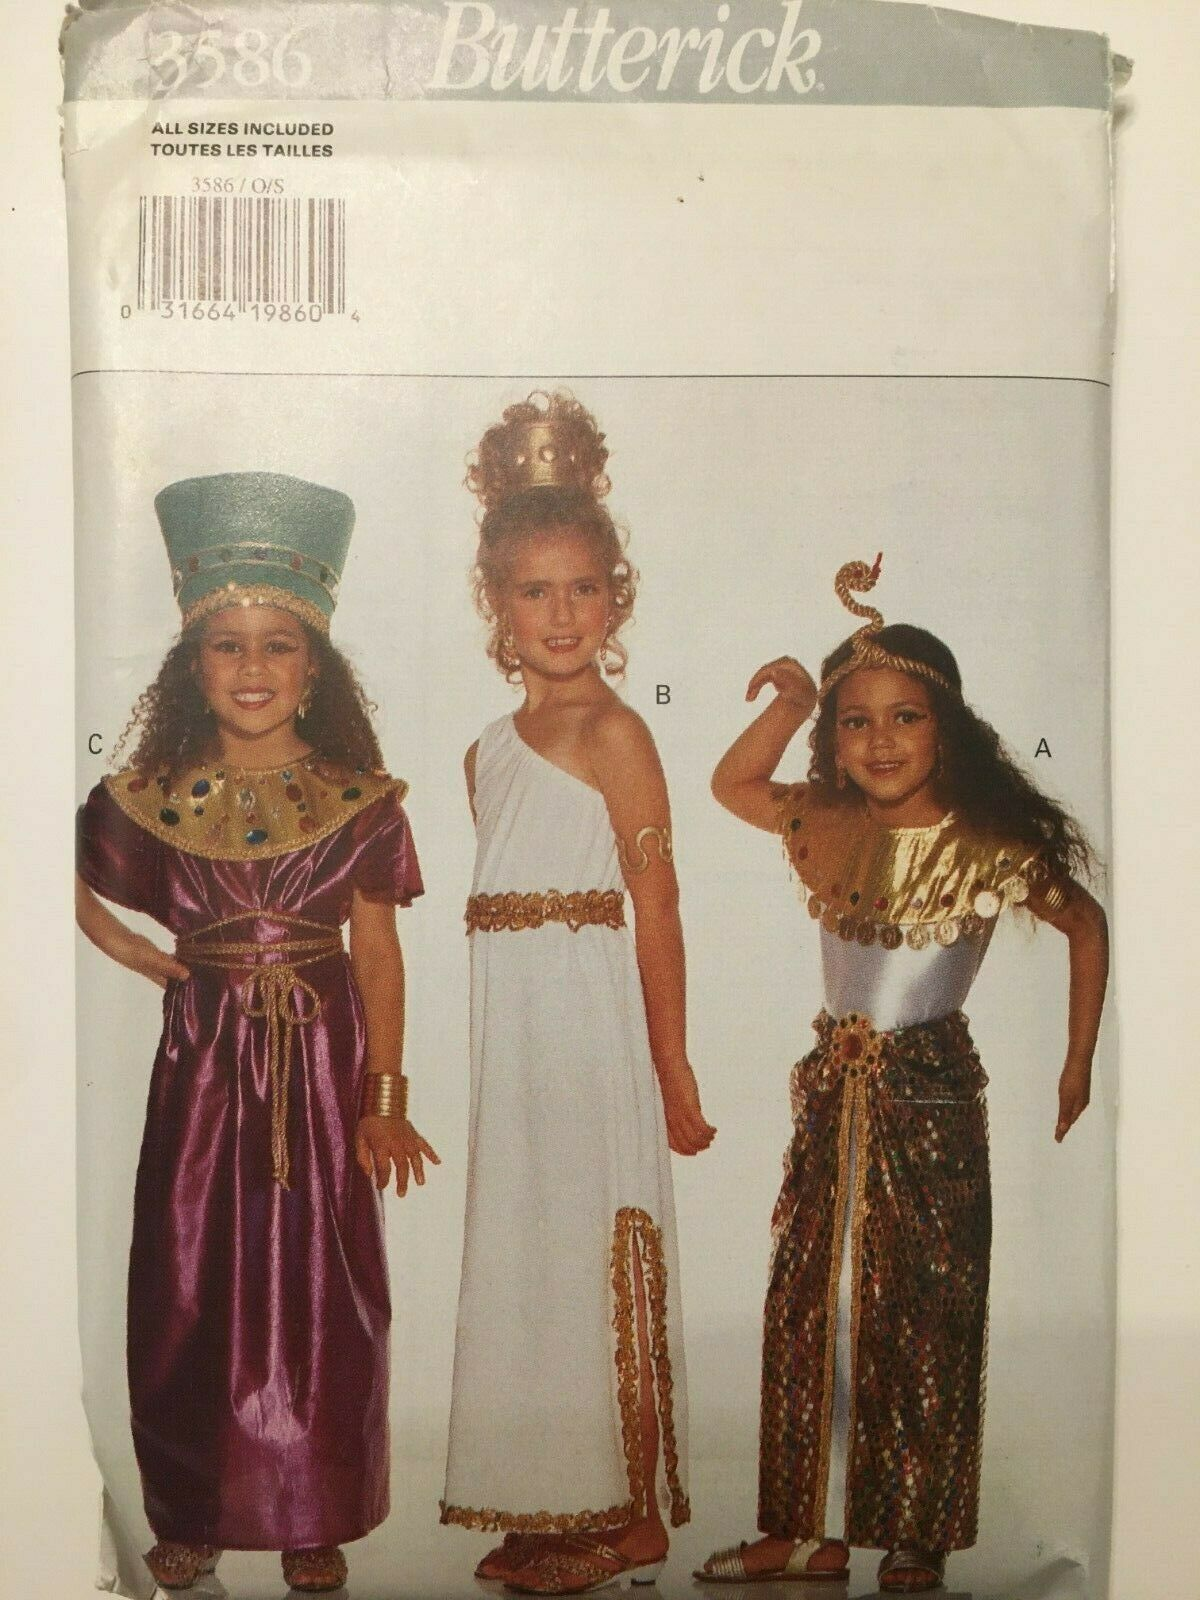 Primary image for Butterick Sewing Pattern 3586 Girls Egyptian Costume Cleopatra Dress XS M L 4-14